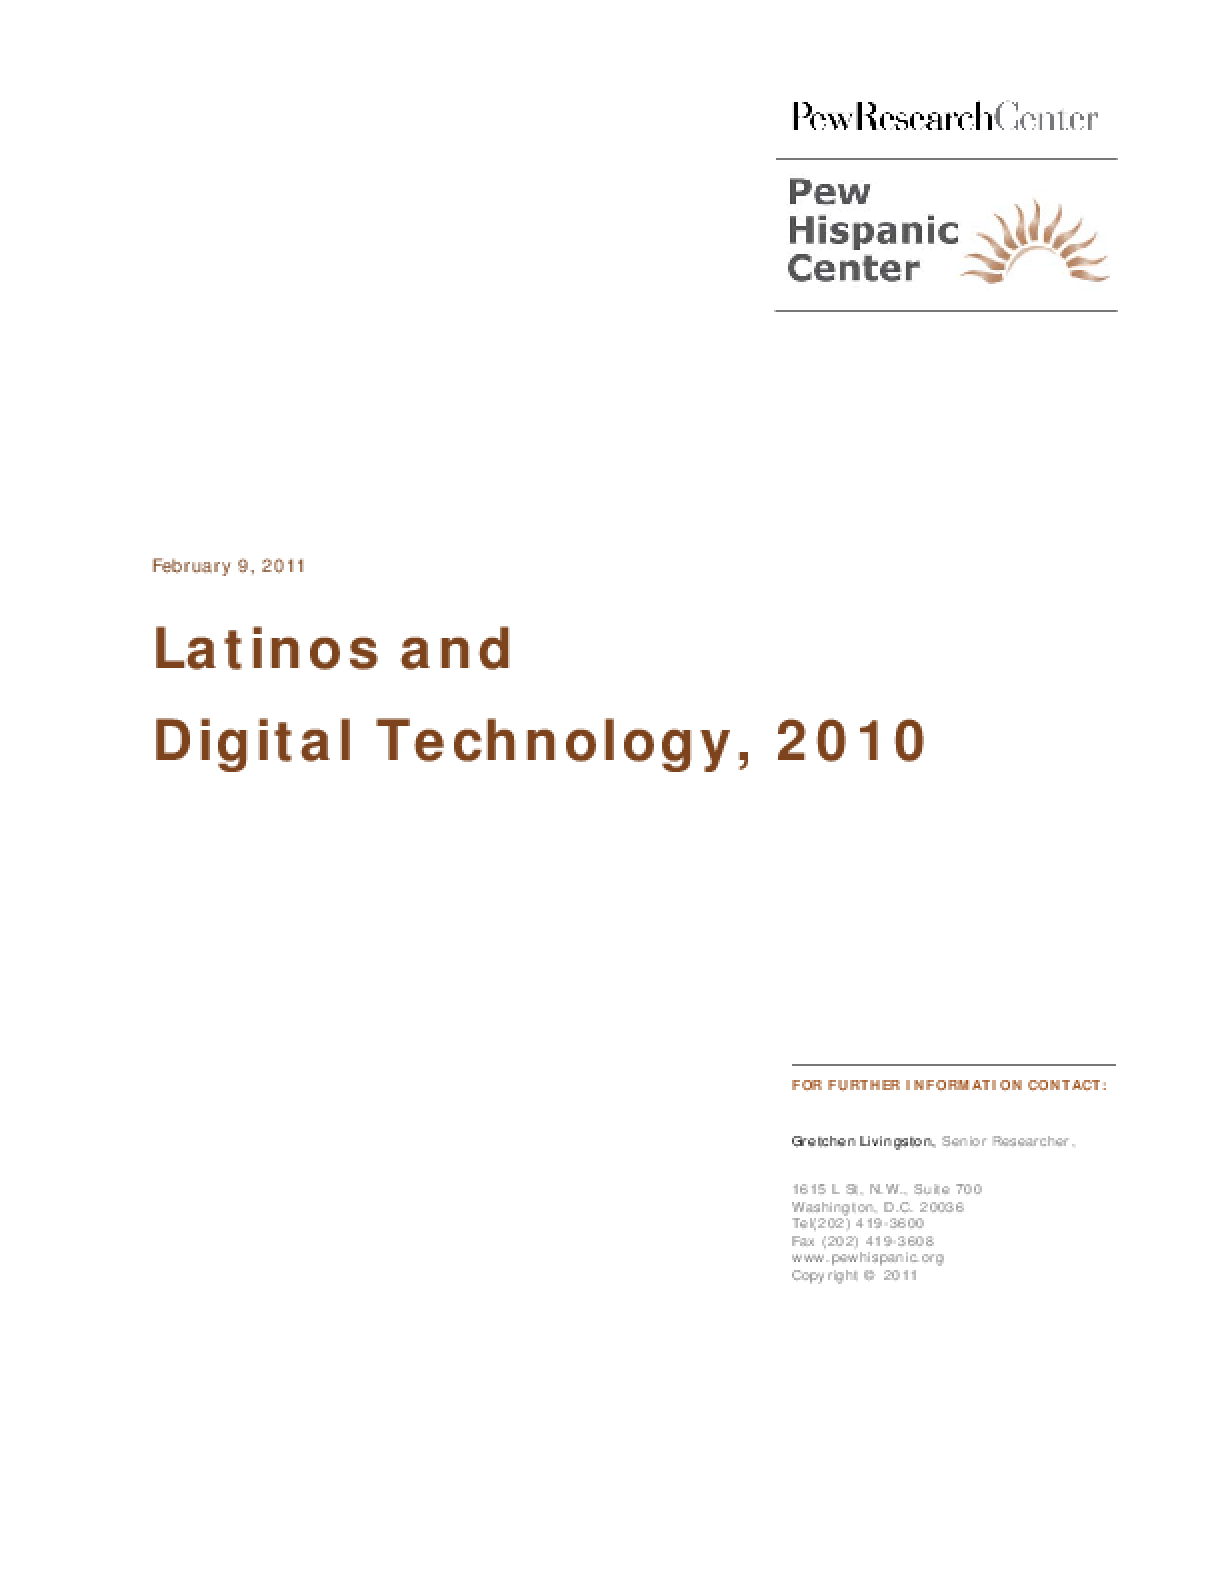 Latinos and Digital Technology, 2010